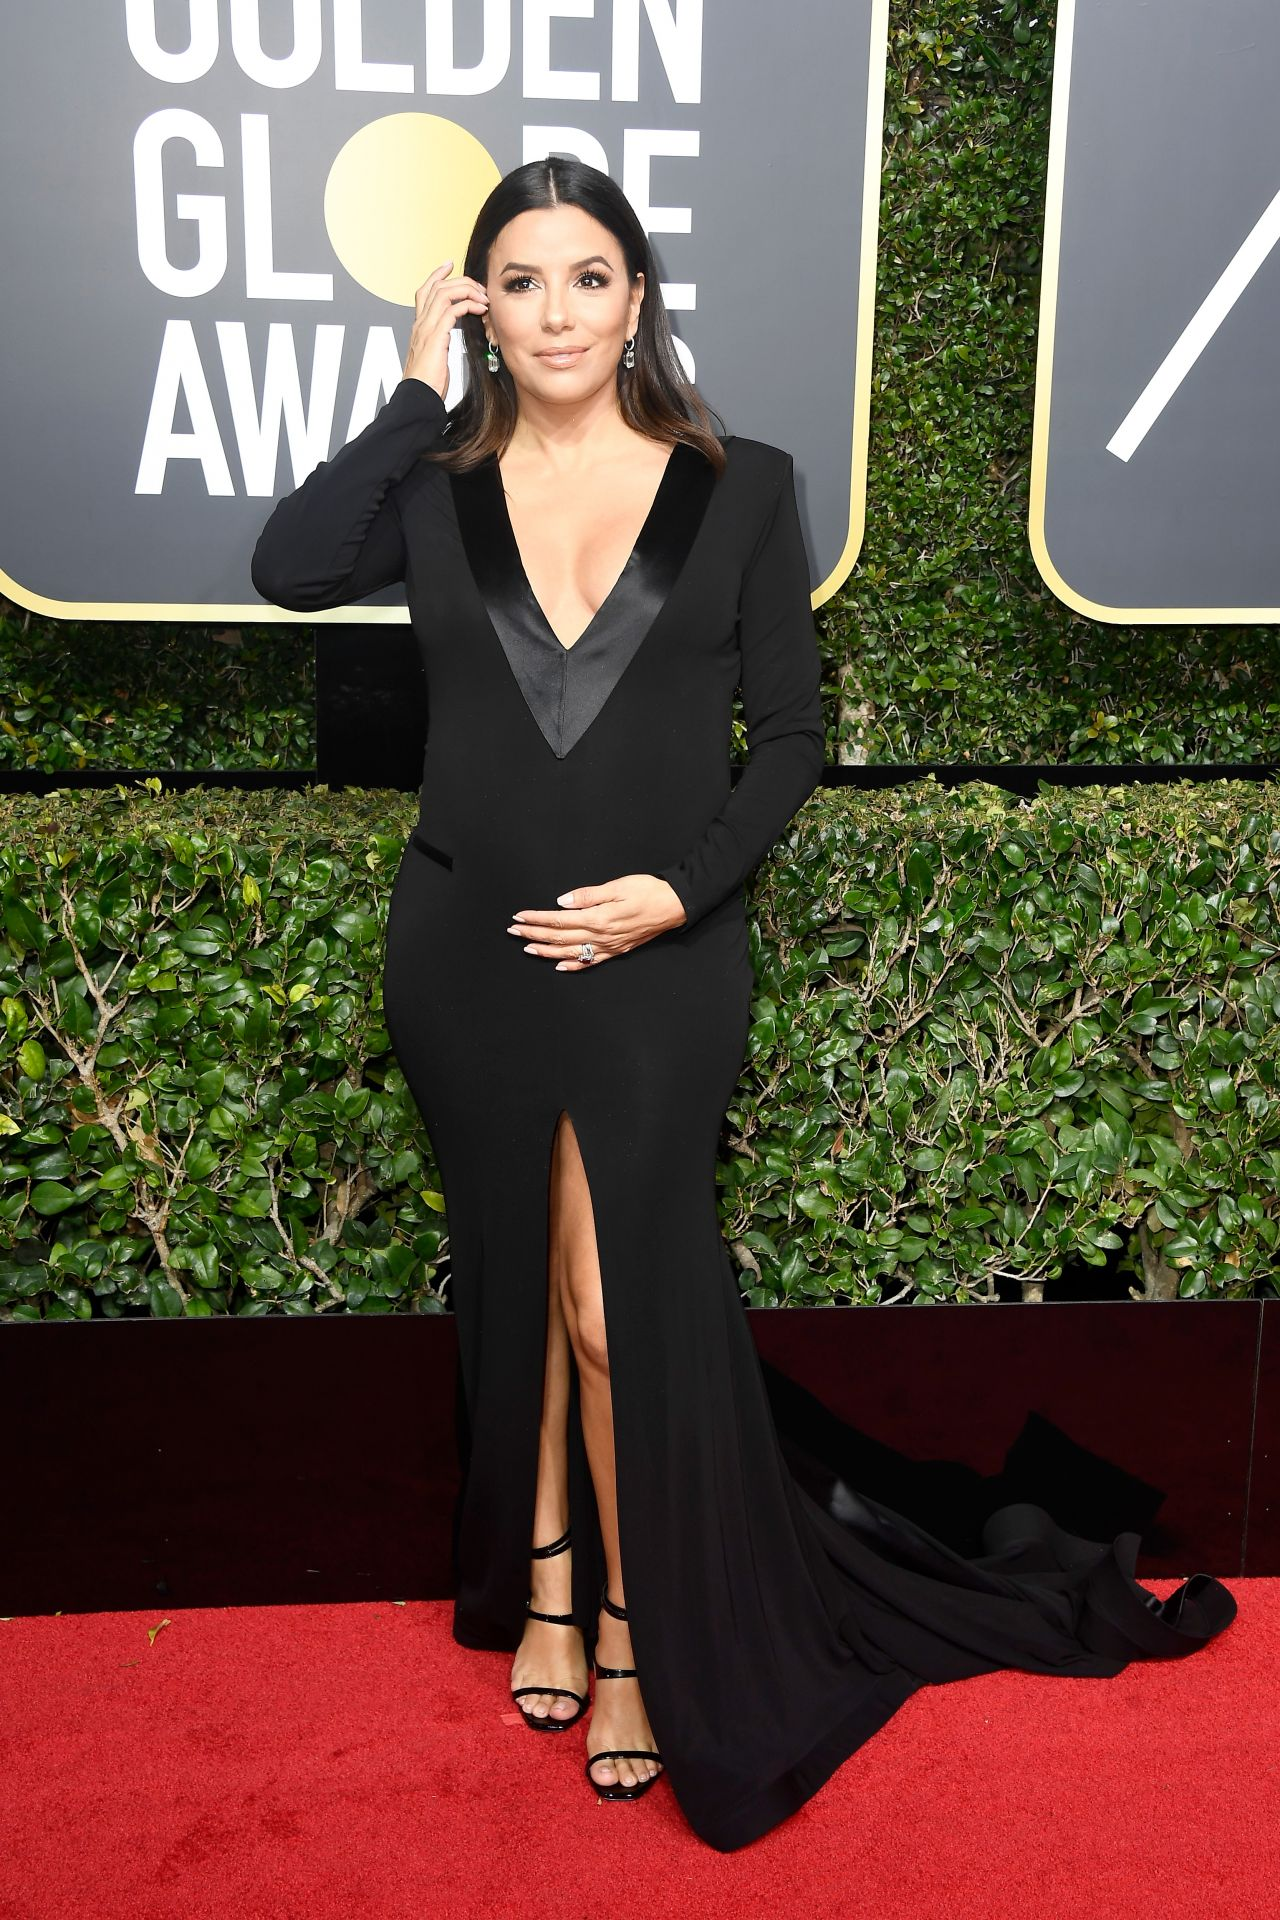 http://celebmafia.com/wp-content/uploads/2018/01/eva-longoria-golden-globe-awards-2018-in-beverly-hills-6.jpg